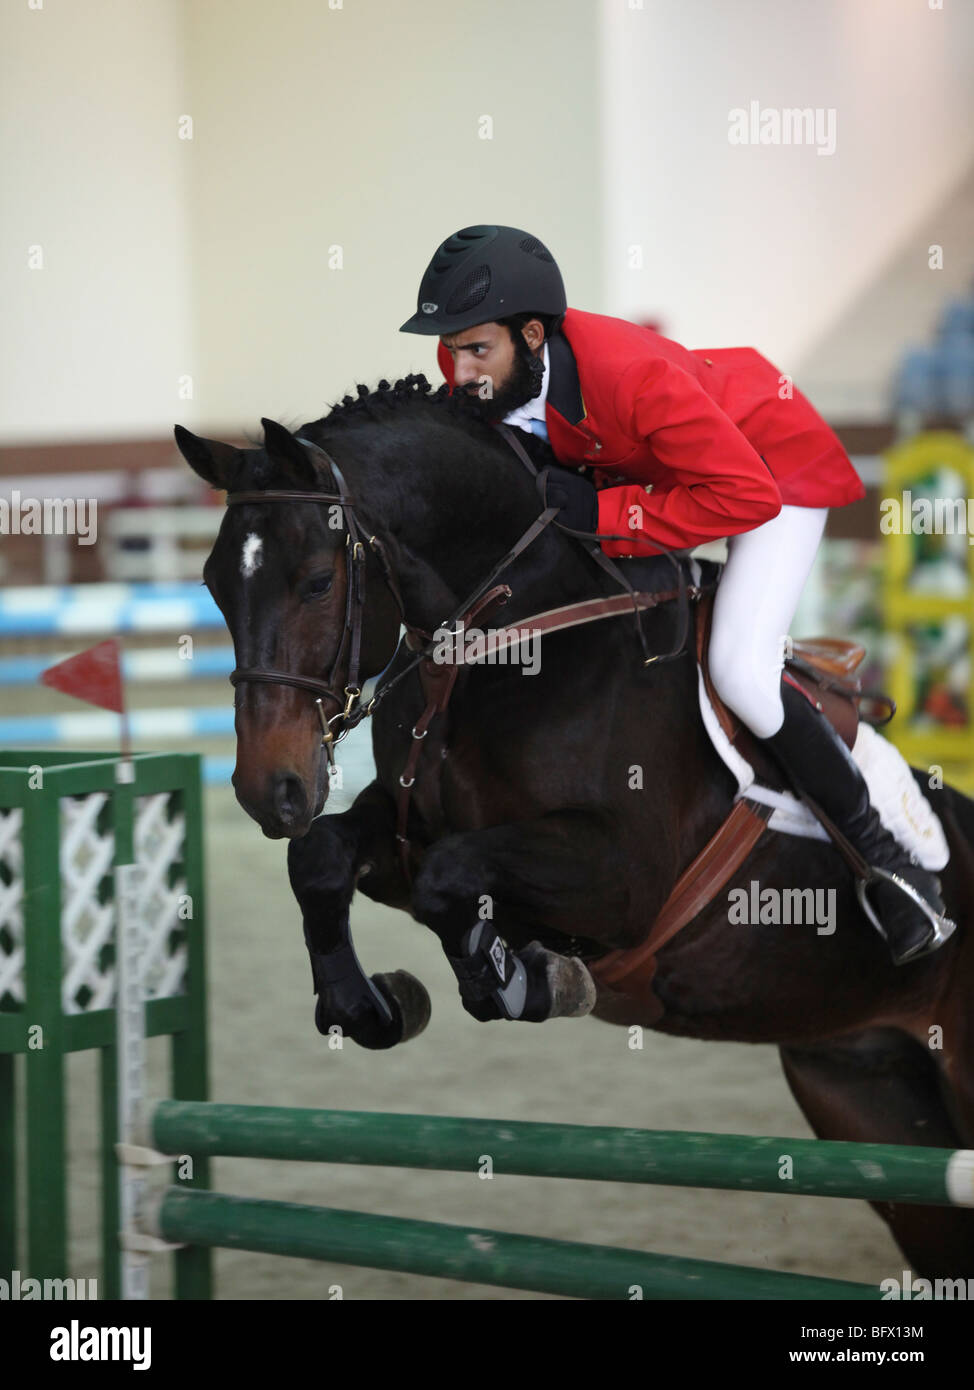 A regional showjumping competition at the Qatar Equestrian Federation's indoor arena in Doha - Stock Image